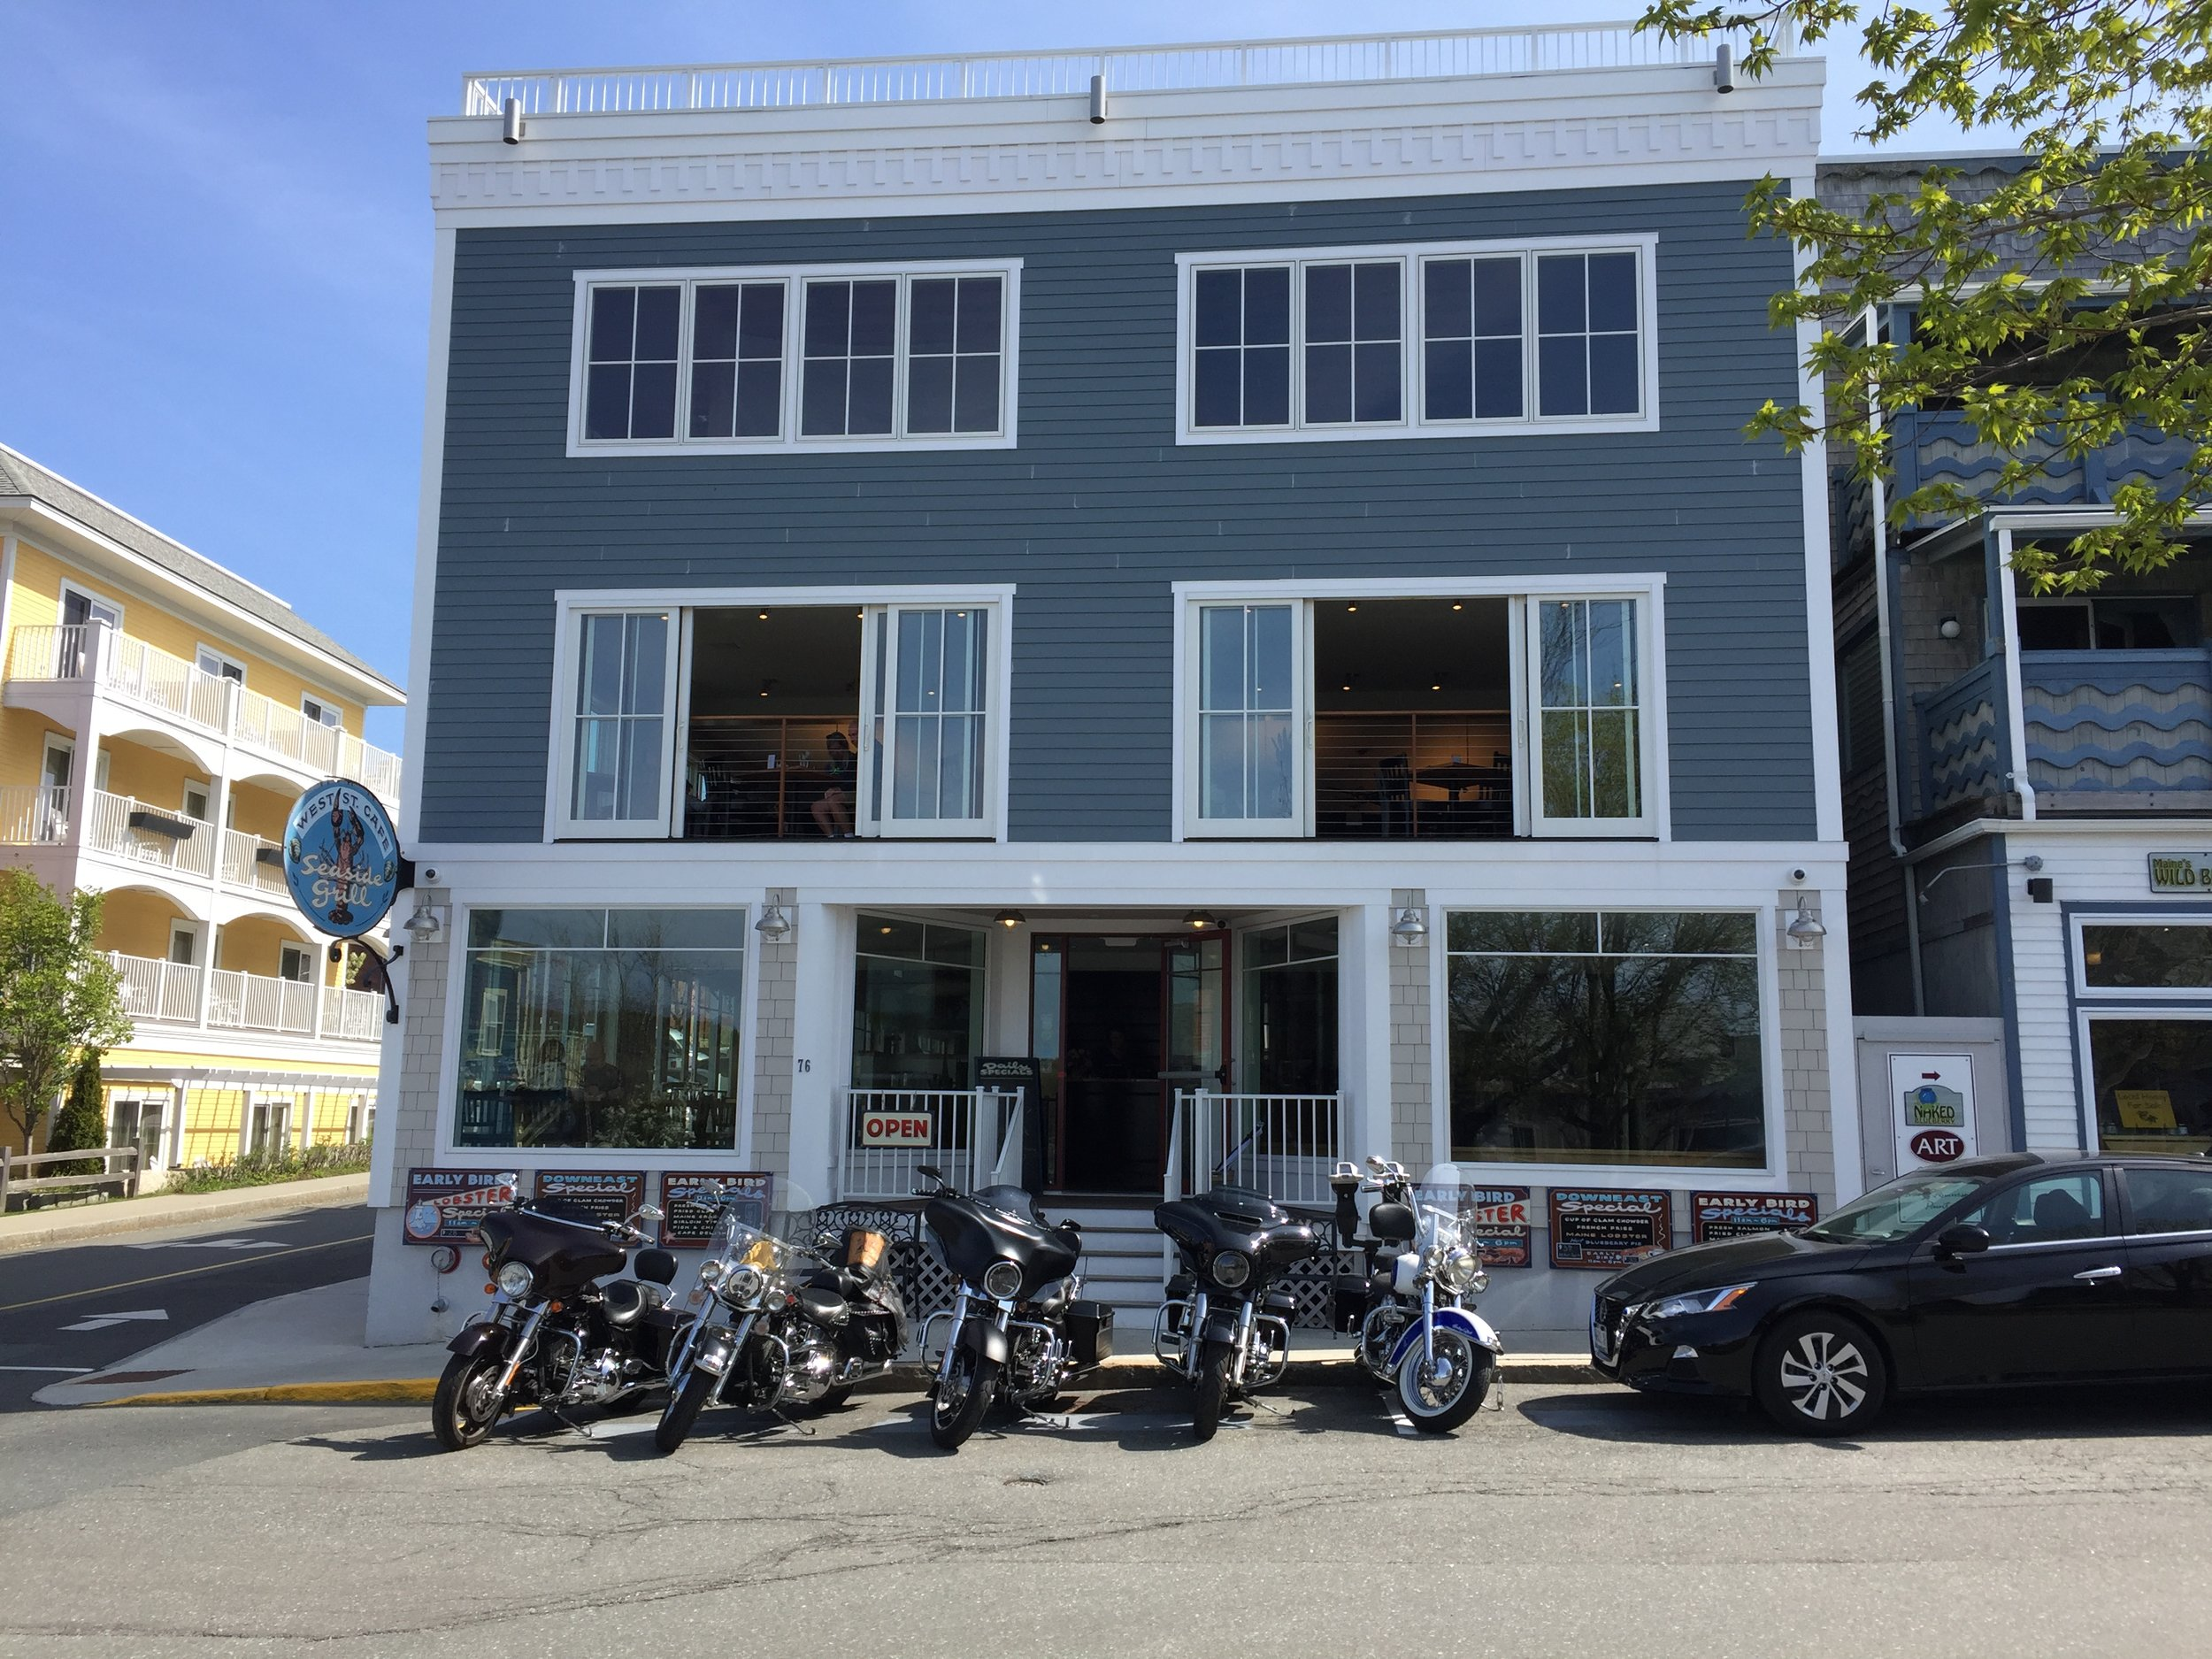 It's a beautiful day in Bar Harbor and a great day to go for a ride! Which one should I take?